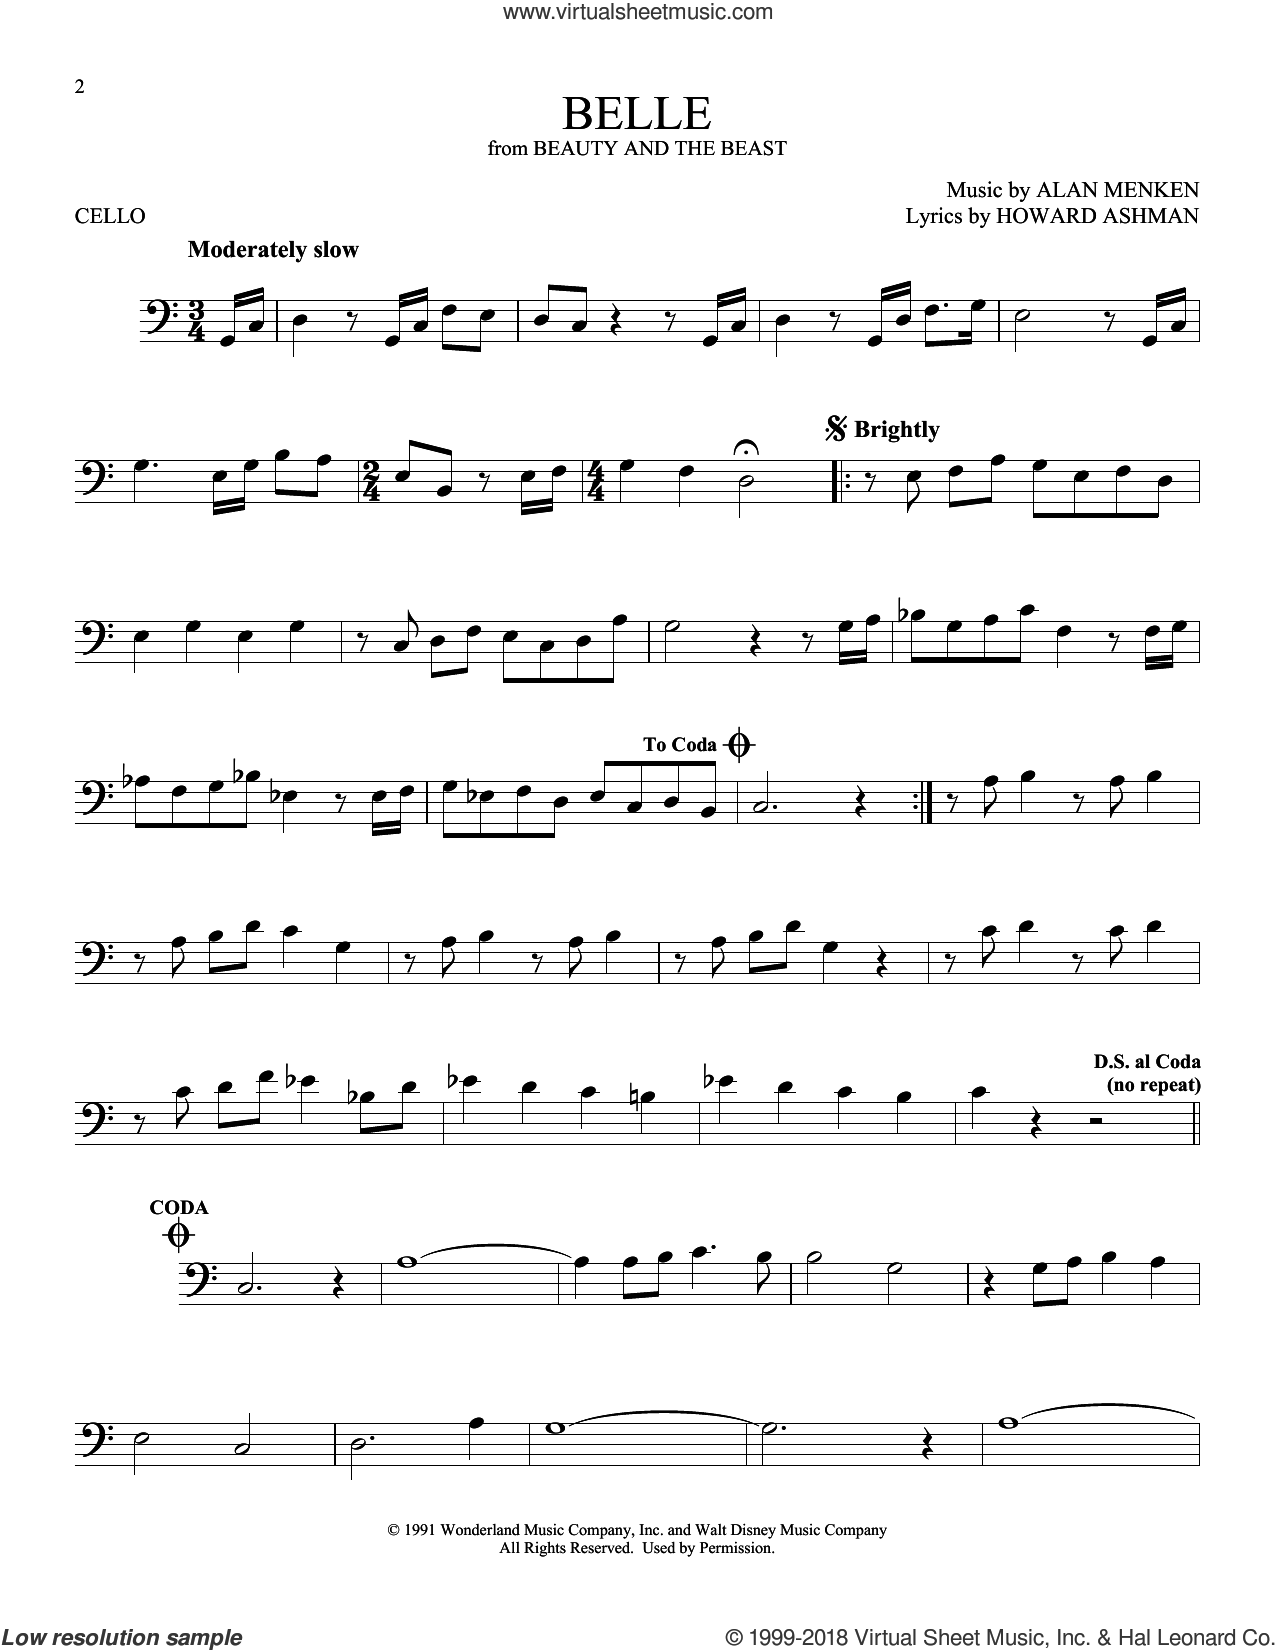 Belle (from Beauty And The Beast) sheet music for cello solo by Alan Menken and Howard Ashman, intermediate skill level